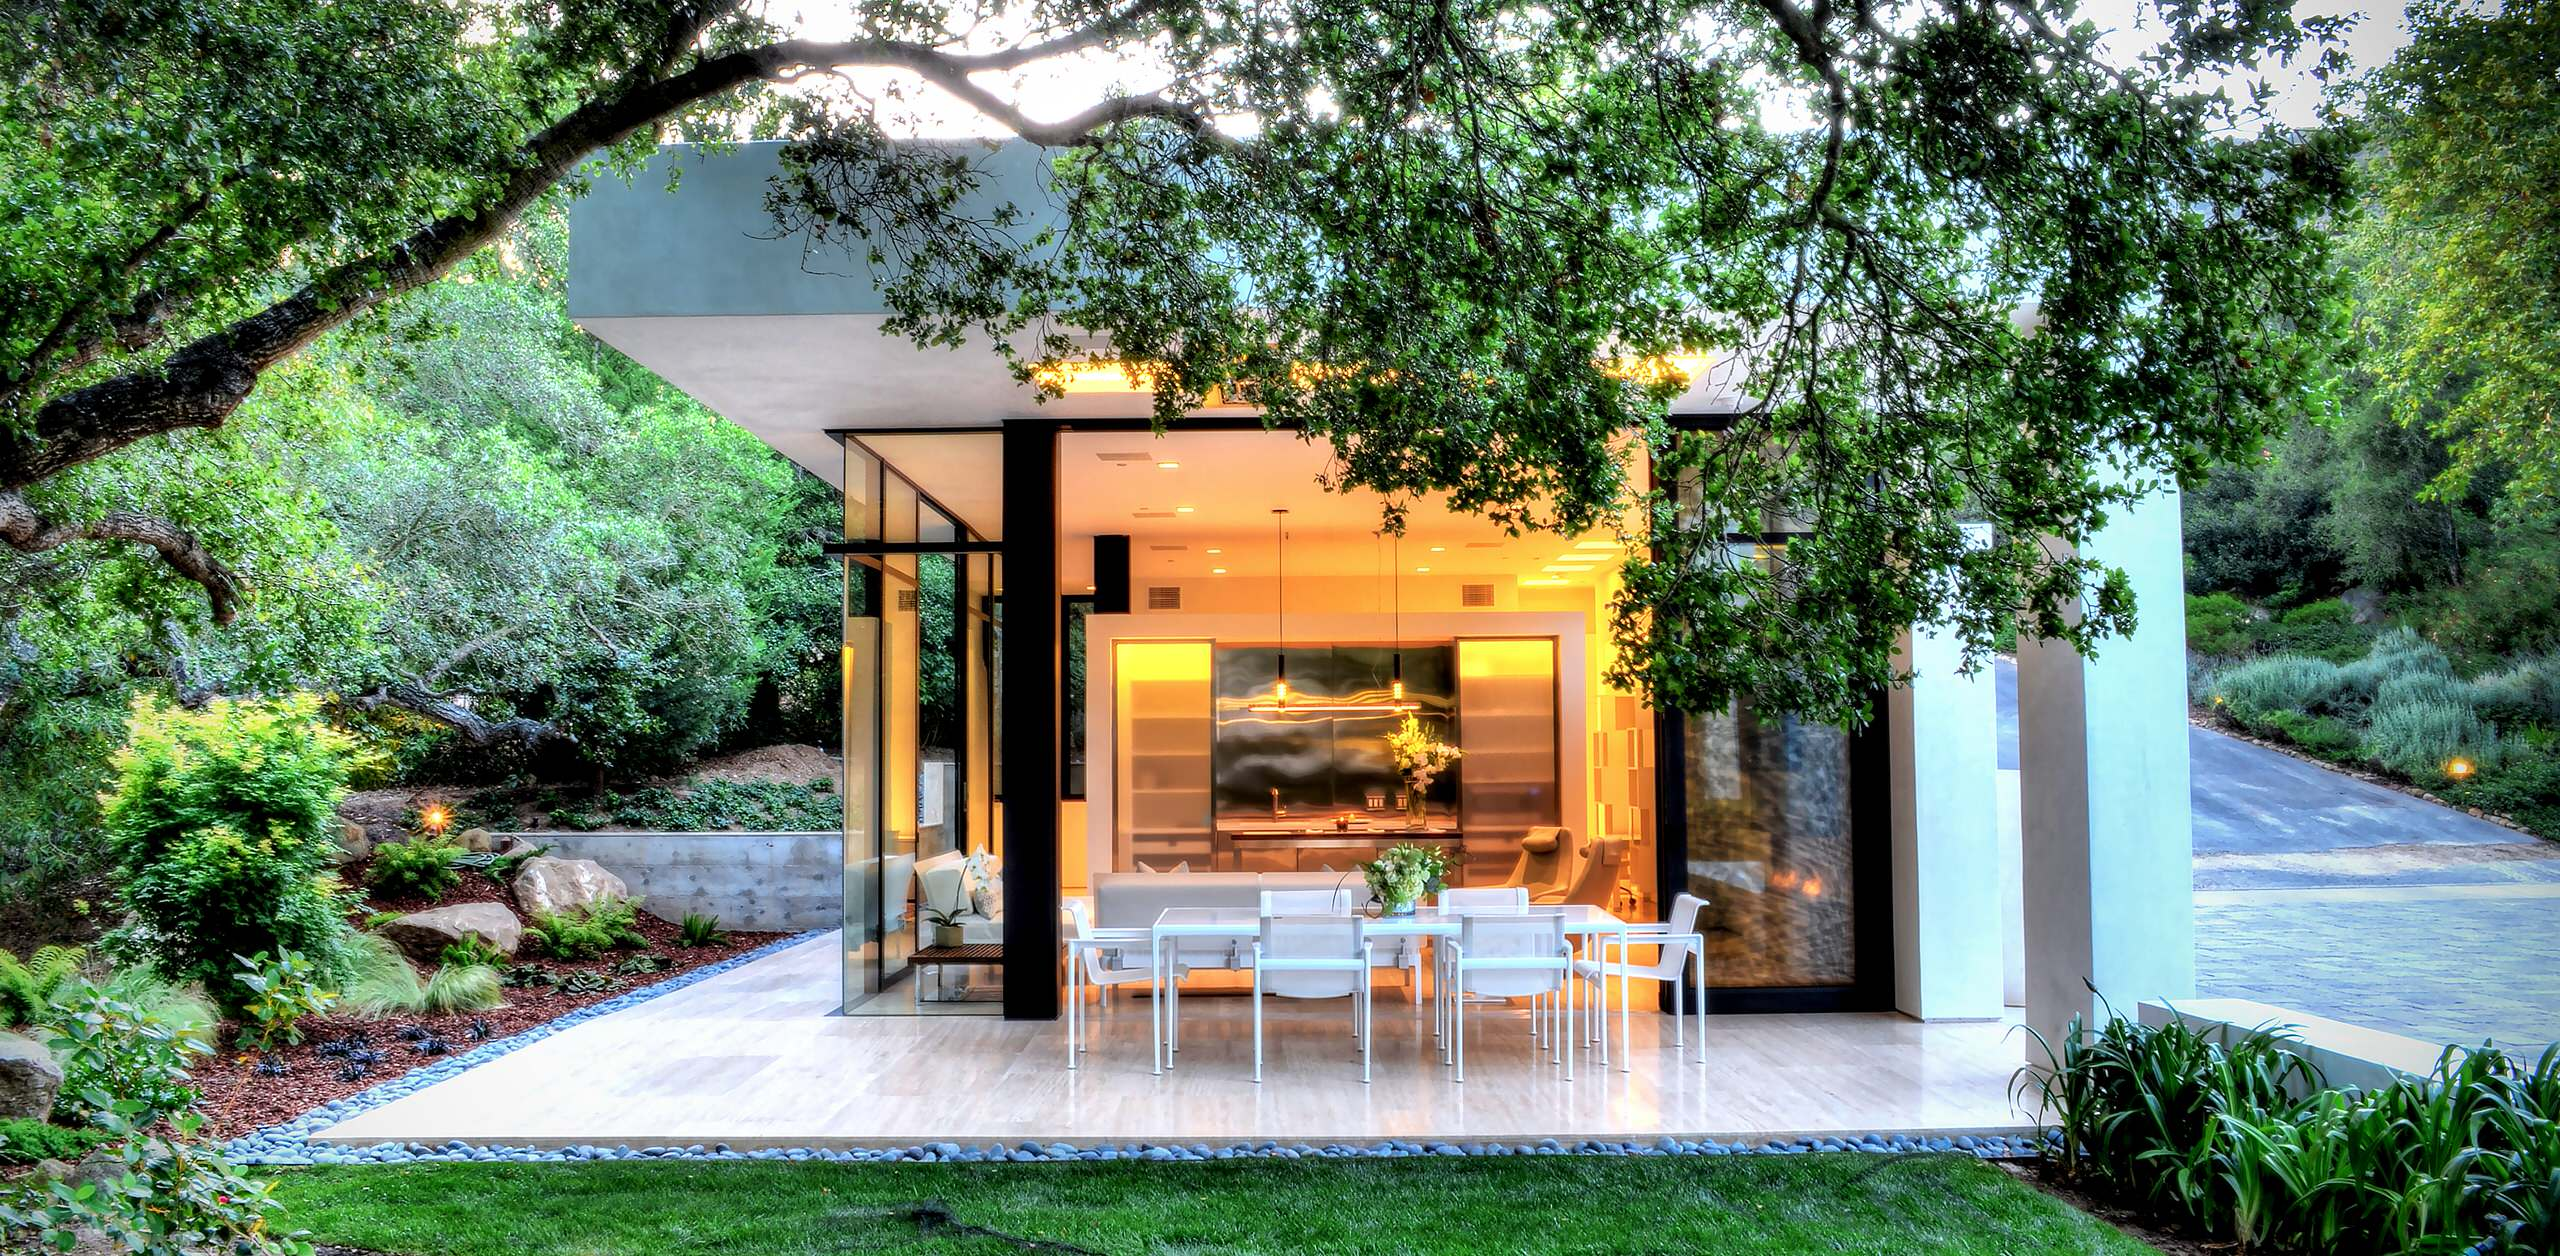 18 Spectacular Modern Patio Designs To Enjoy The Outdoors on Modern Small Patio Ideas id=61017